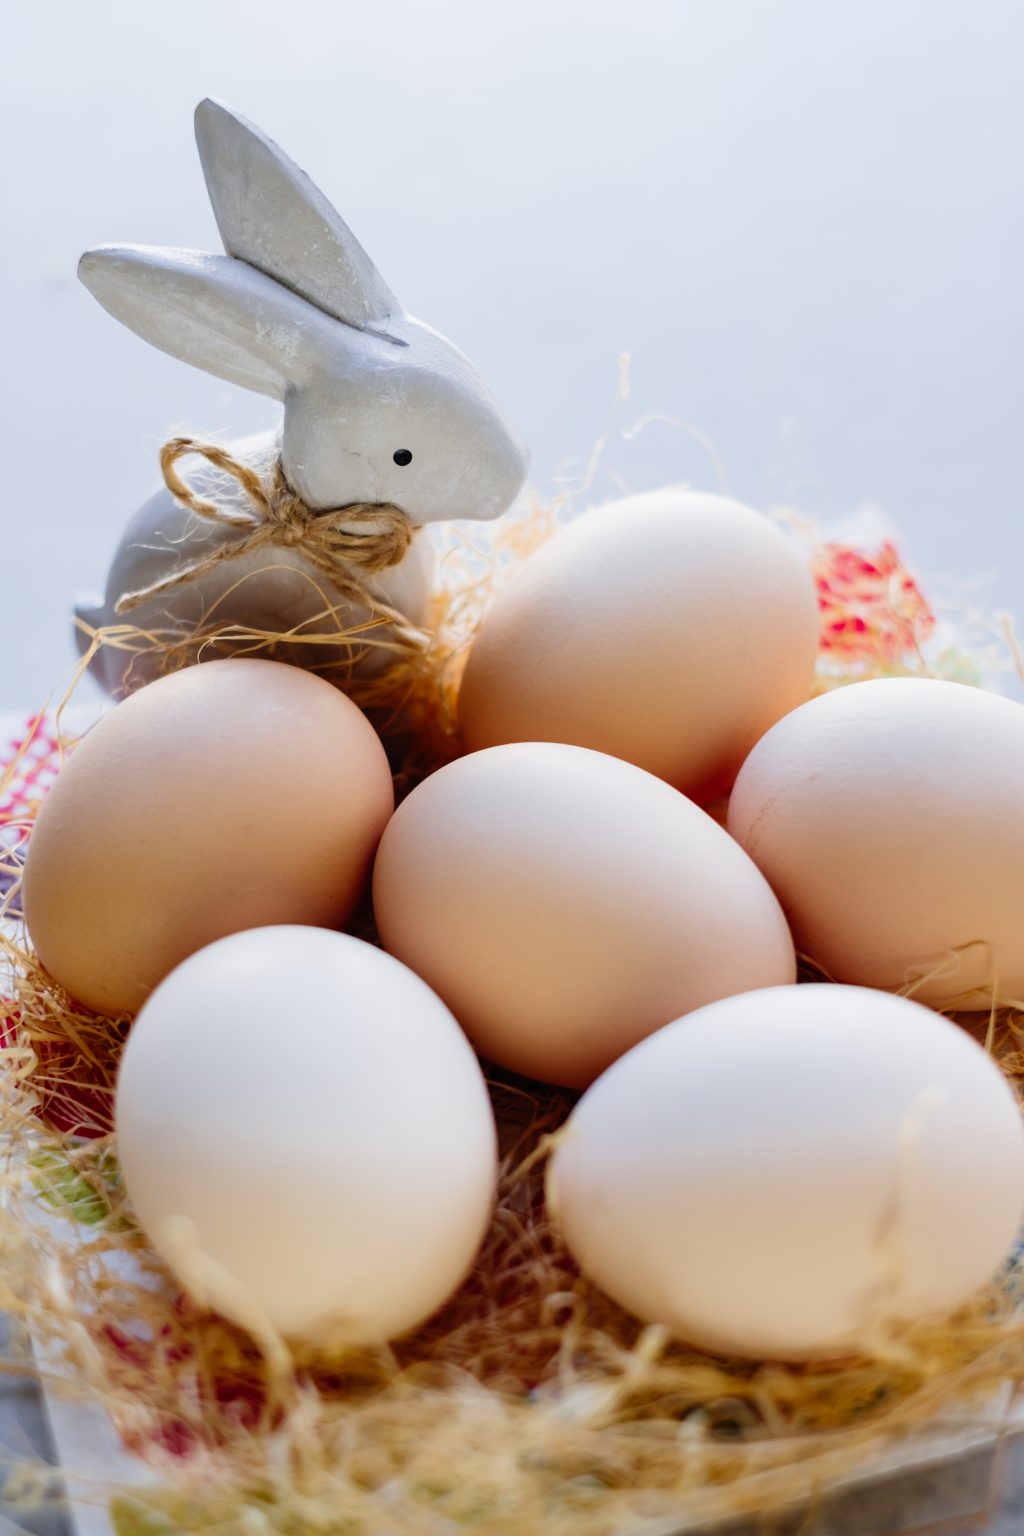 Ceramic Easter Bunny and plain eggs - free stock photo